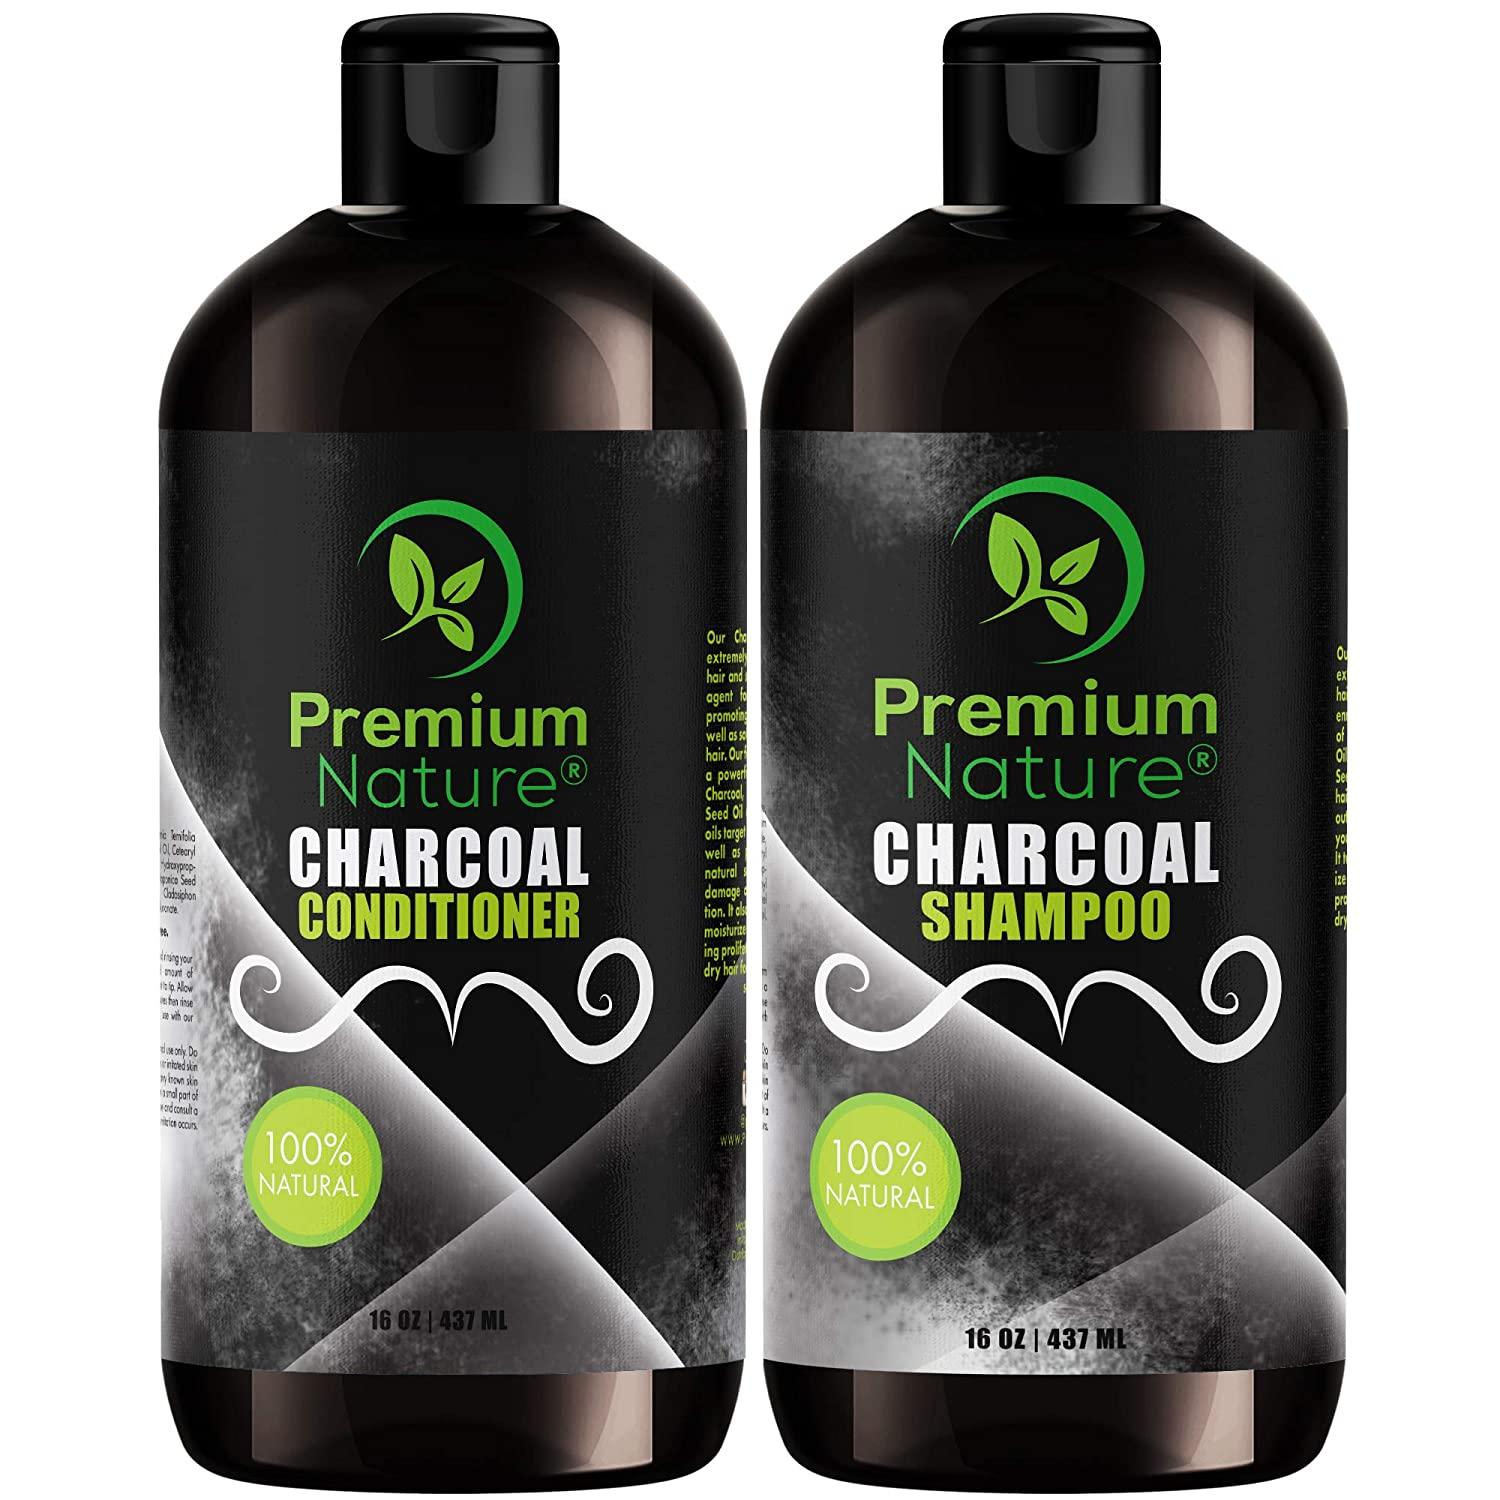 Charcoal Shampoo & Conditioner Sulfate Free - Natural Volumizing & Moisturizing Anti Dandruff Activated Charcoal Hair Shampoo Conditioner for Oily Dry Scalp Damaged Color Treated Hair Mens & Women Set